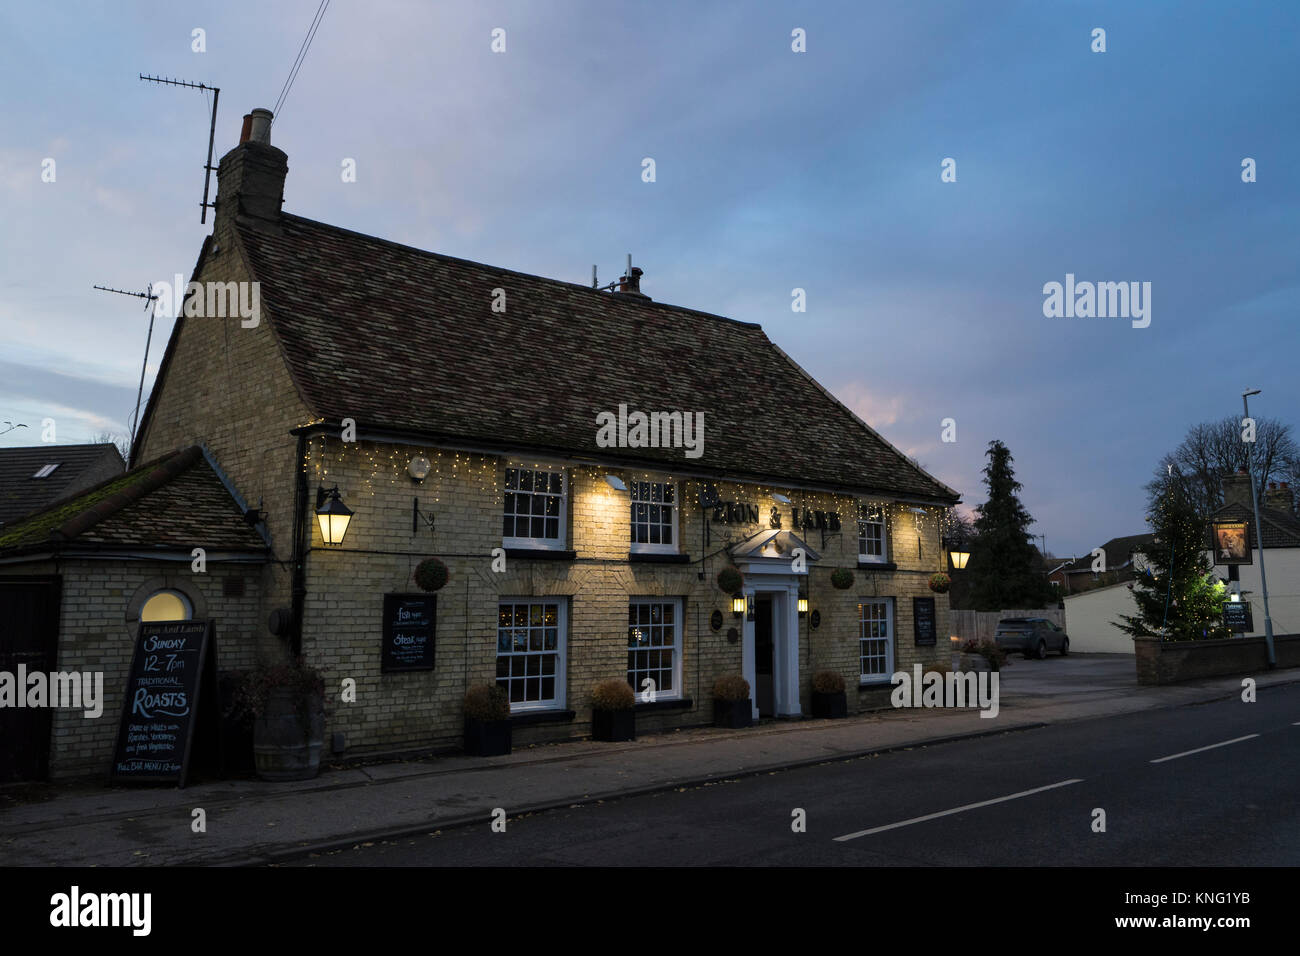 Lion and Lamb public house lit up at dusk on Milton high street - Stock Image